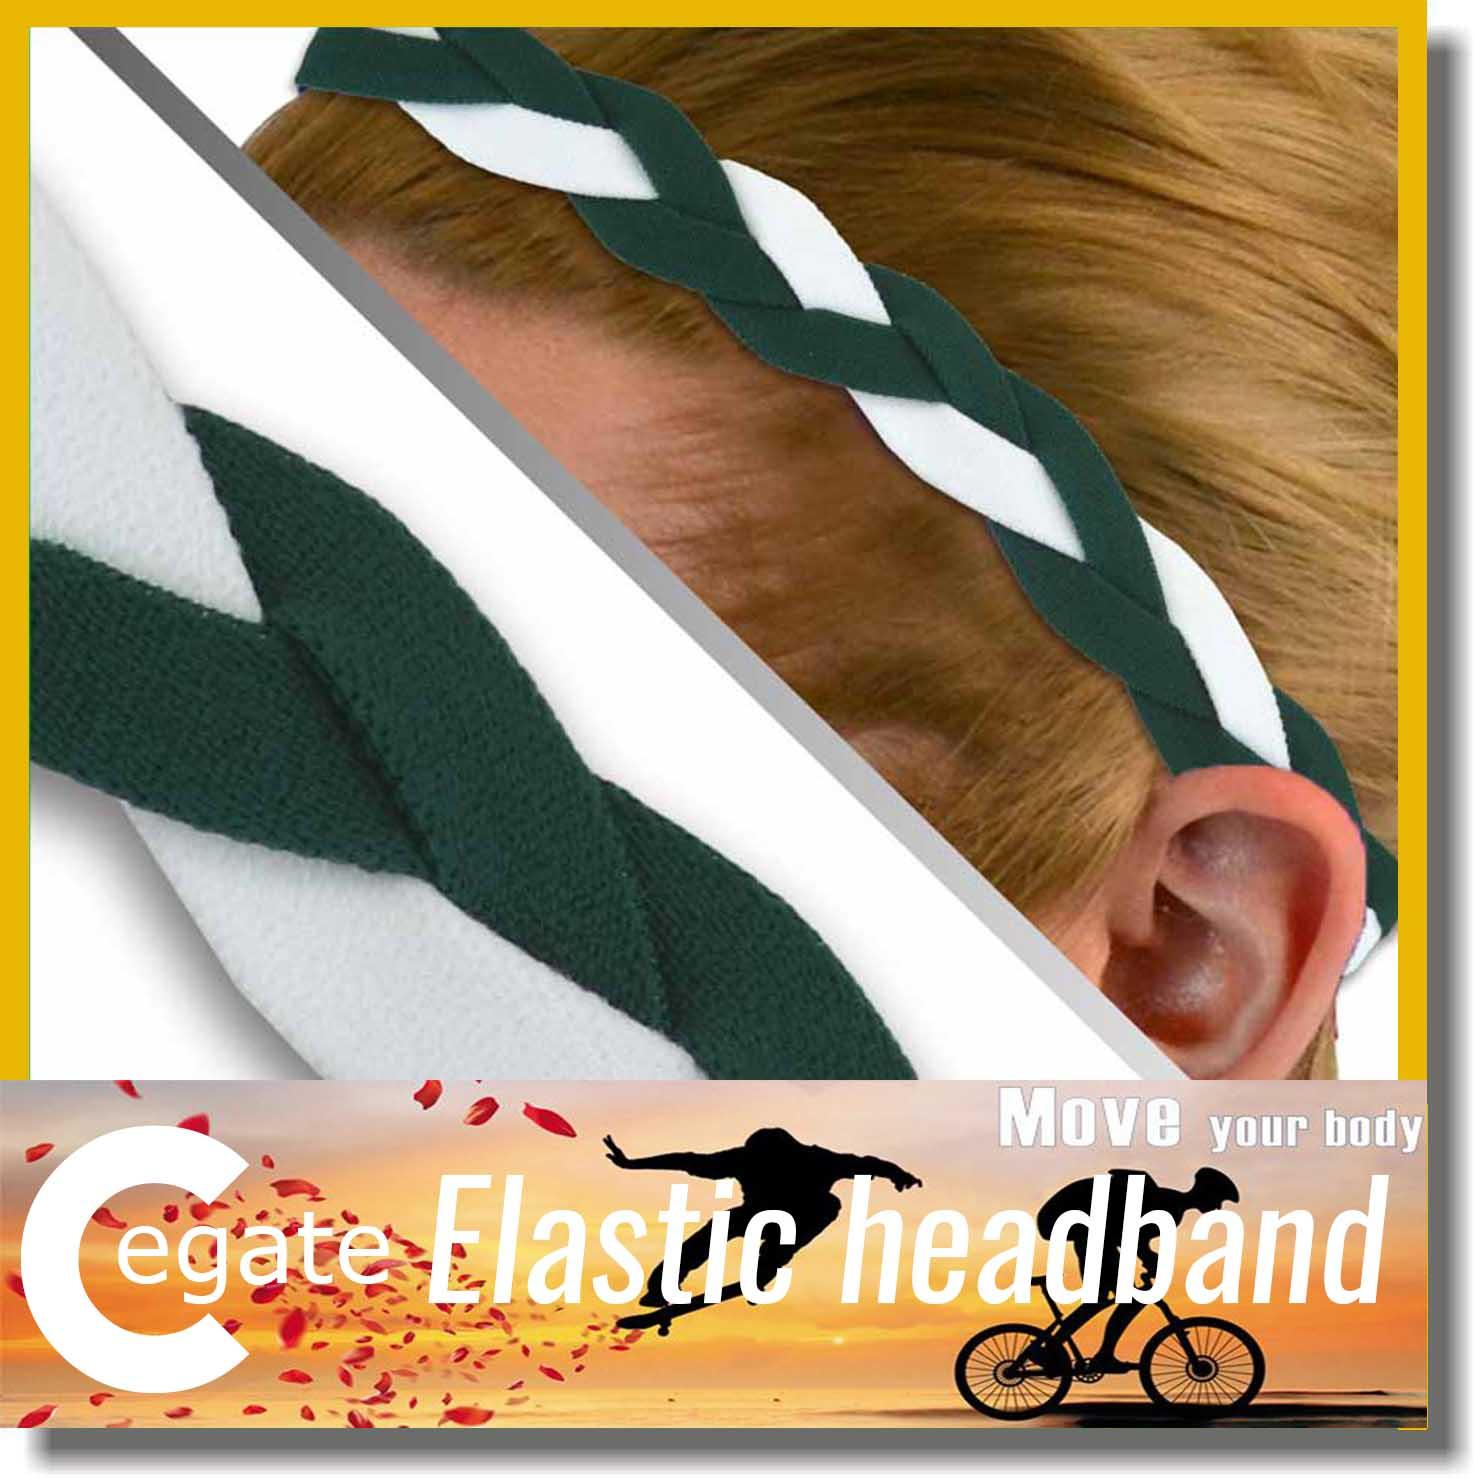 Wholesale 100 pieces lot Headbands Triple Braided Sports Headband with Non slip grip for Softball